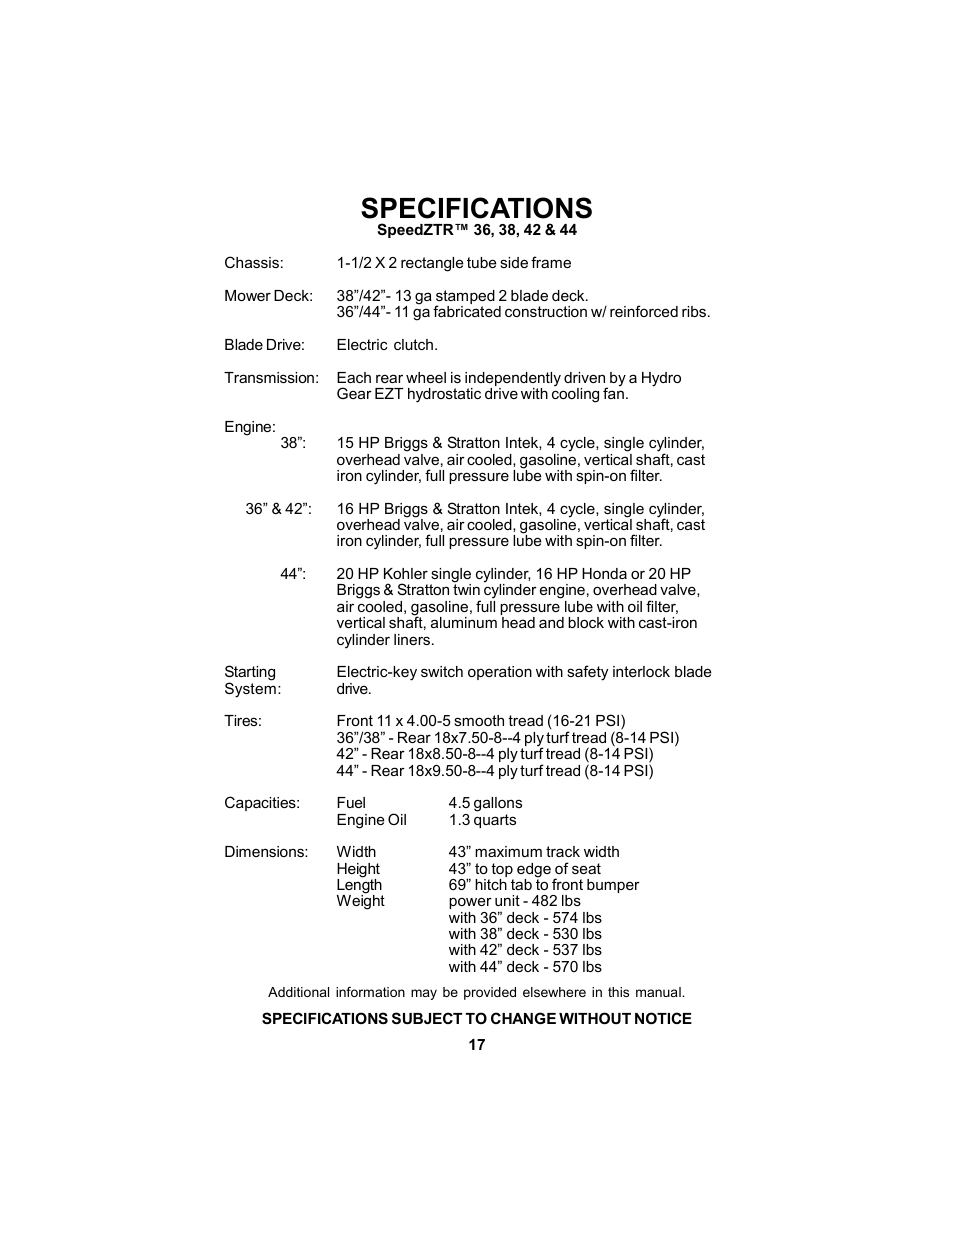 Specifications Dixon Speedztr 36 User Manual Page 17 52 Hp Briggs And Stratton Engine Diagram